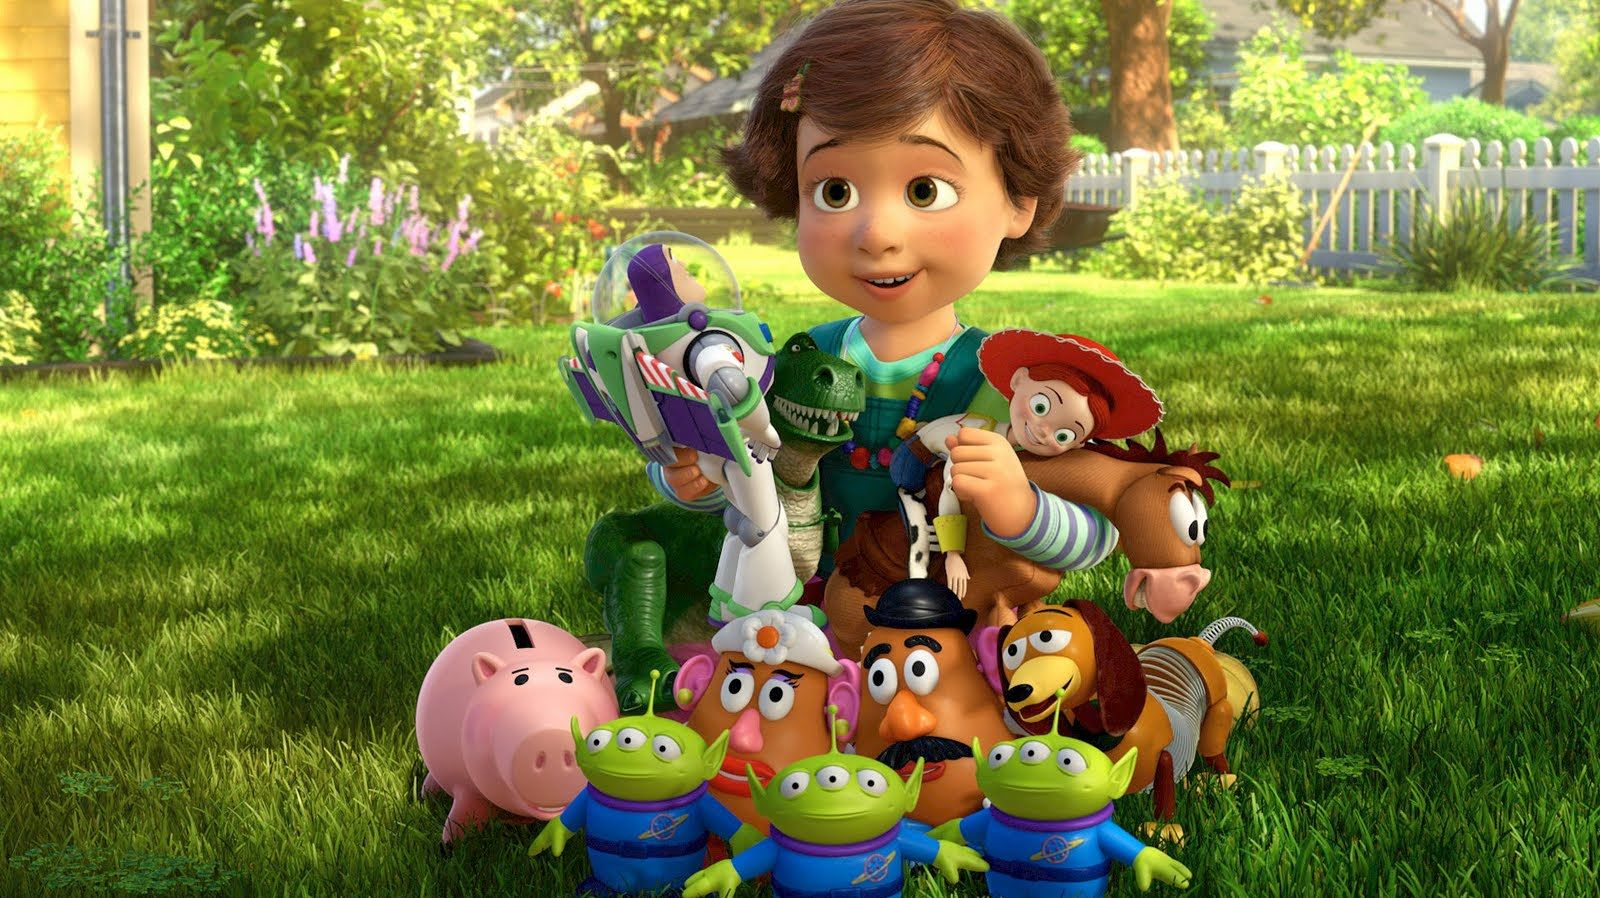 When Will Toy Story 4 Premiere Date New Release Date On